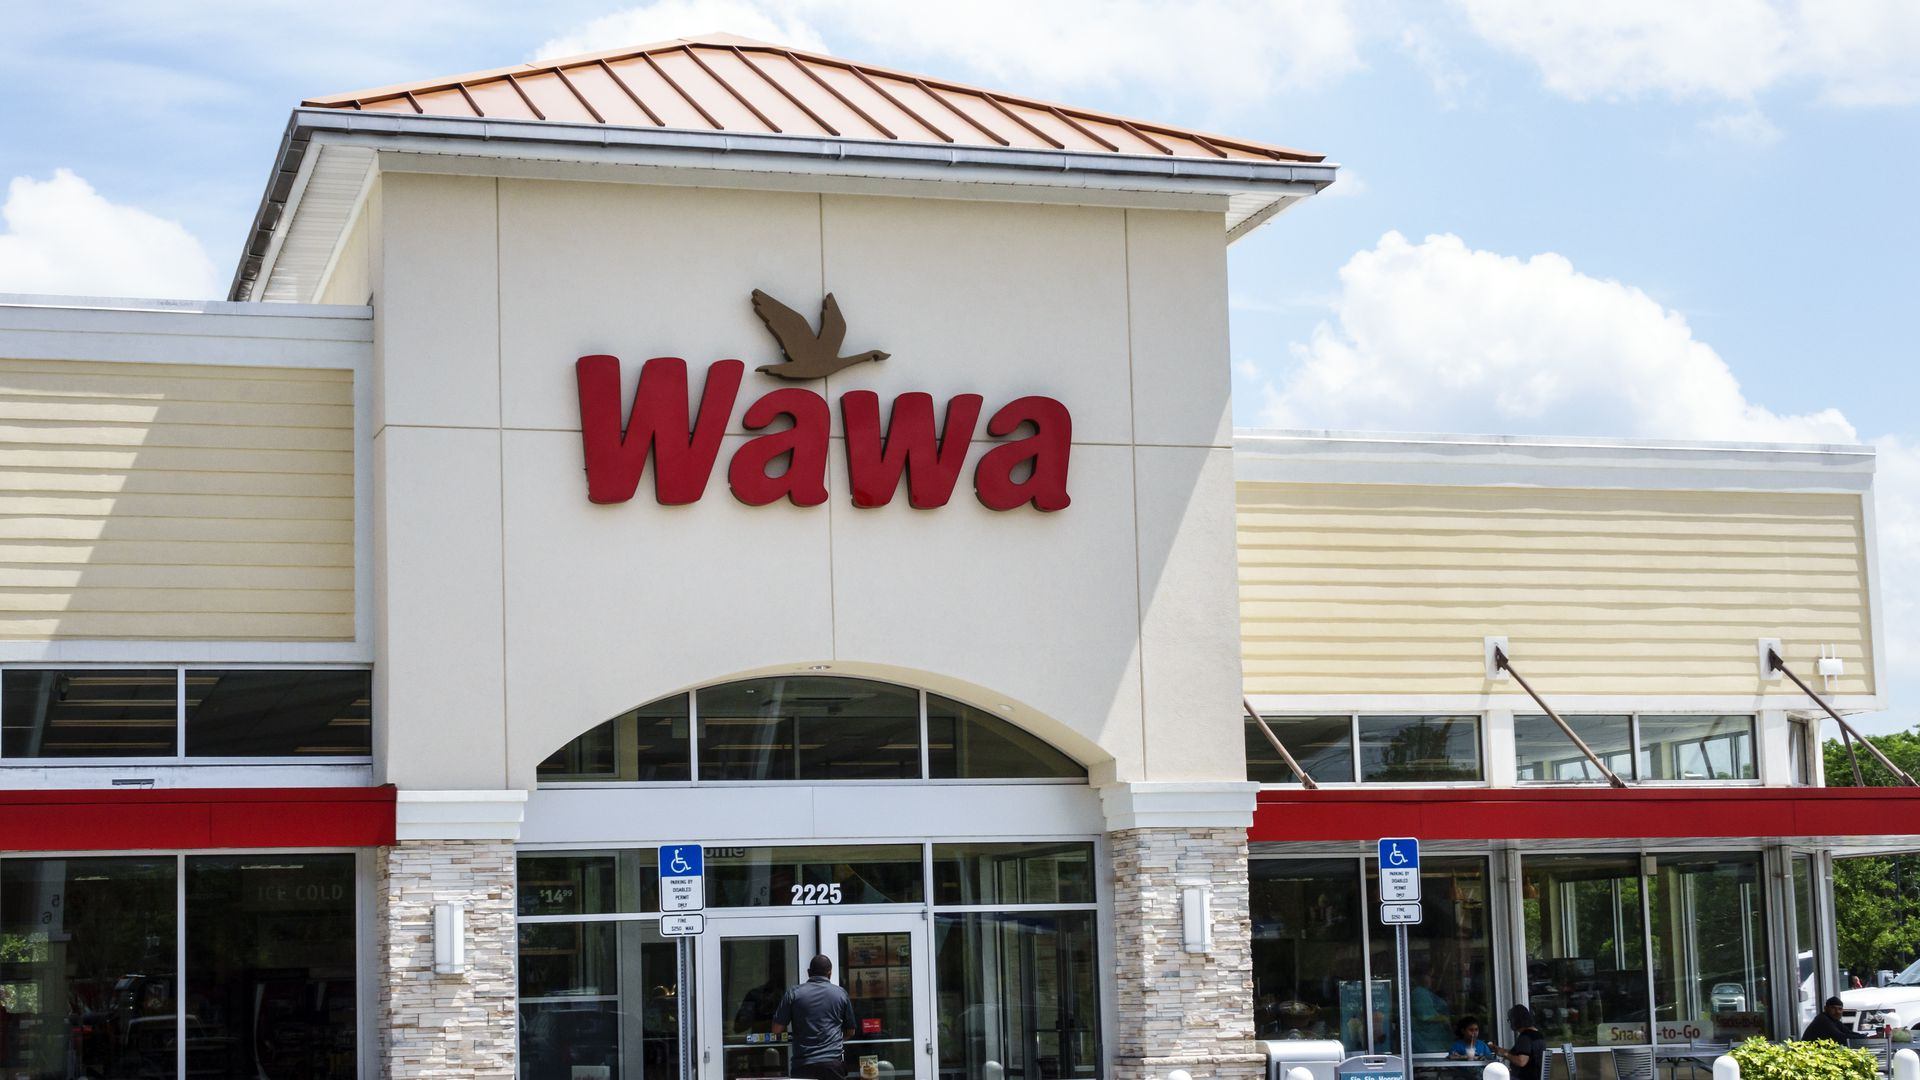 The entrance to Wawa